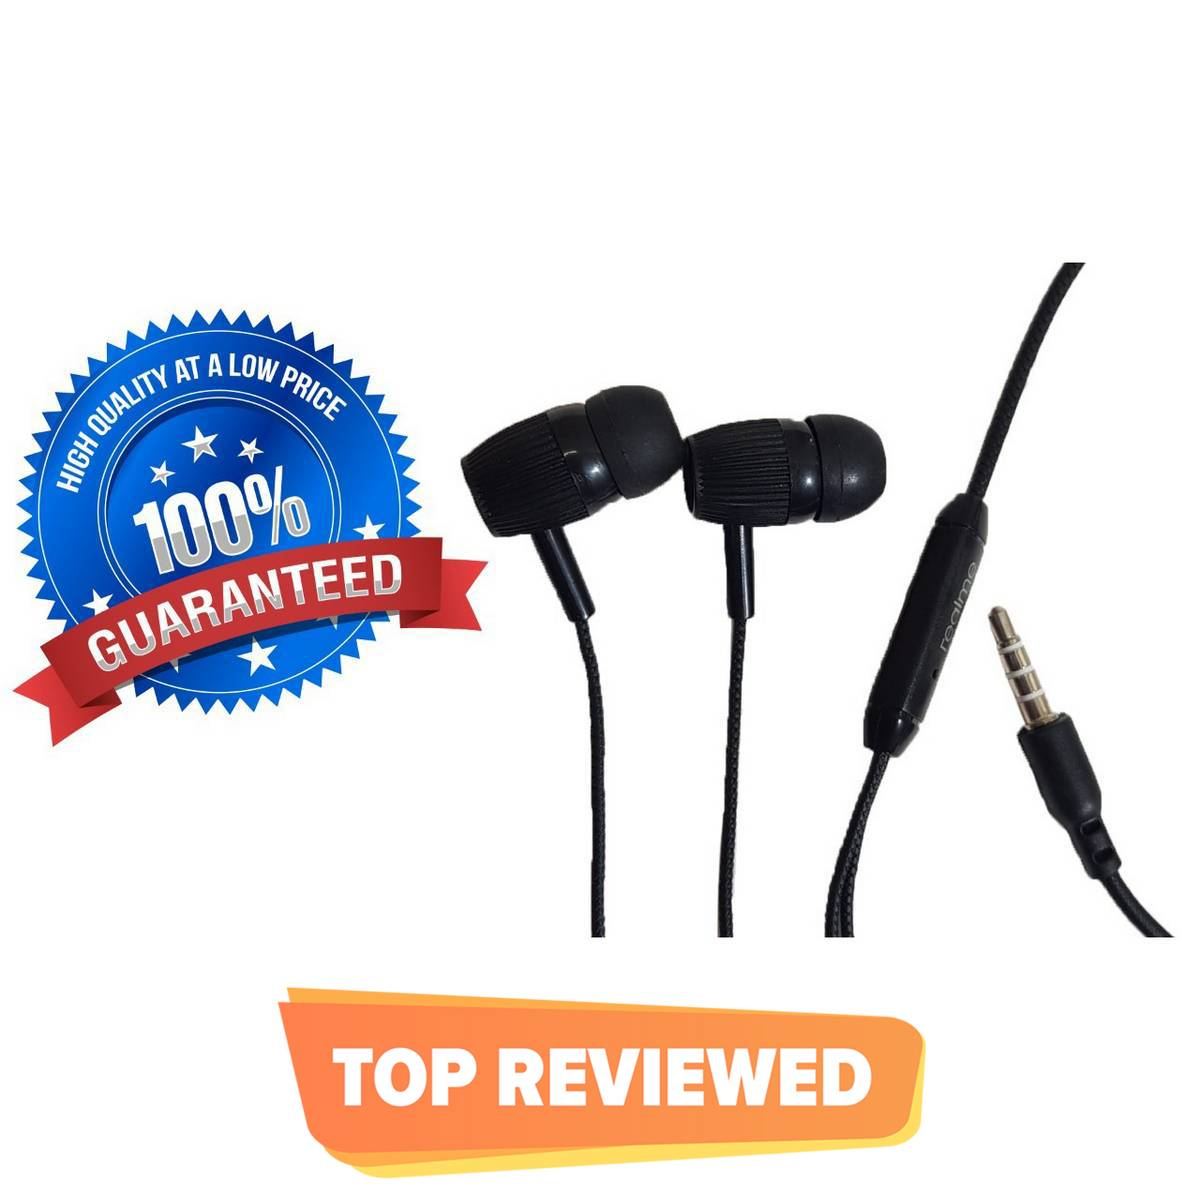 Handfree 3.5mm  Earbuds wired with Mic  Cable Earphones  Handsfree for gaming, music, Pubg, Samsung  Compatible with Android device Stereo Handsfree  Mobile Handsfree for Gaming  Handfree for Girls